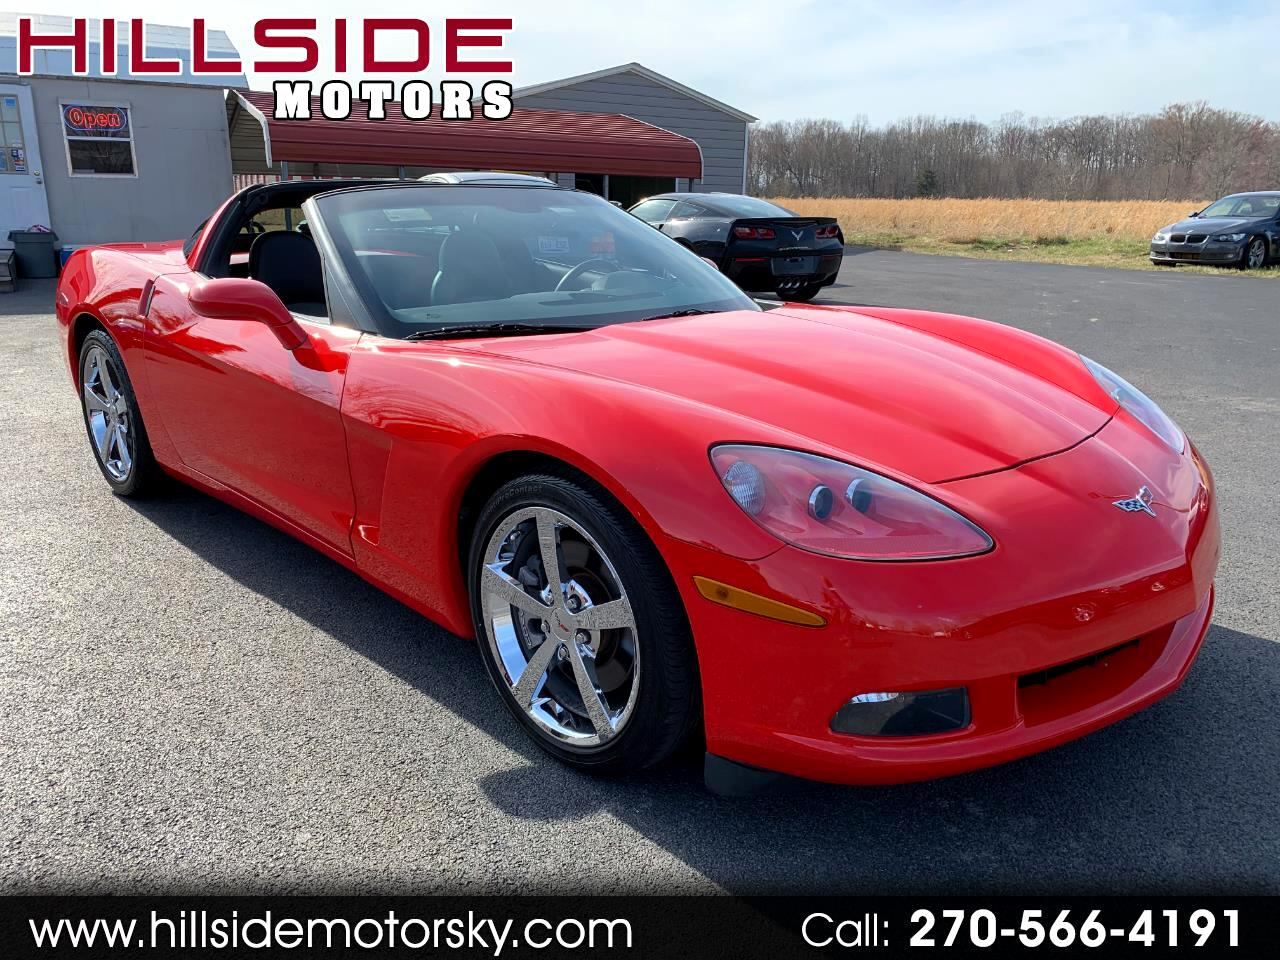 2010 Chevrolet Corvette 1LT